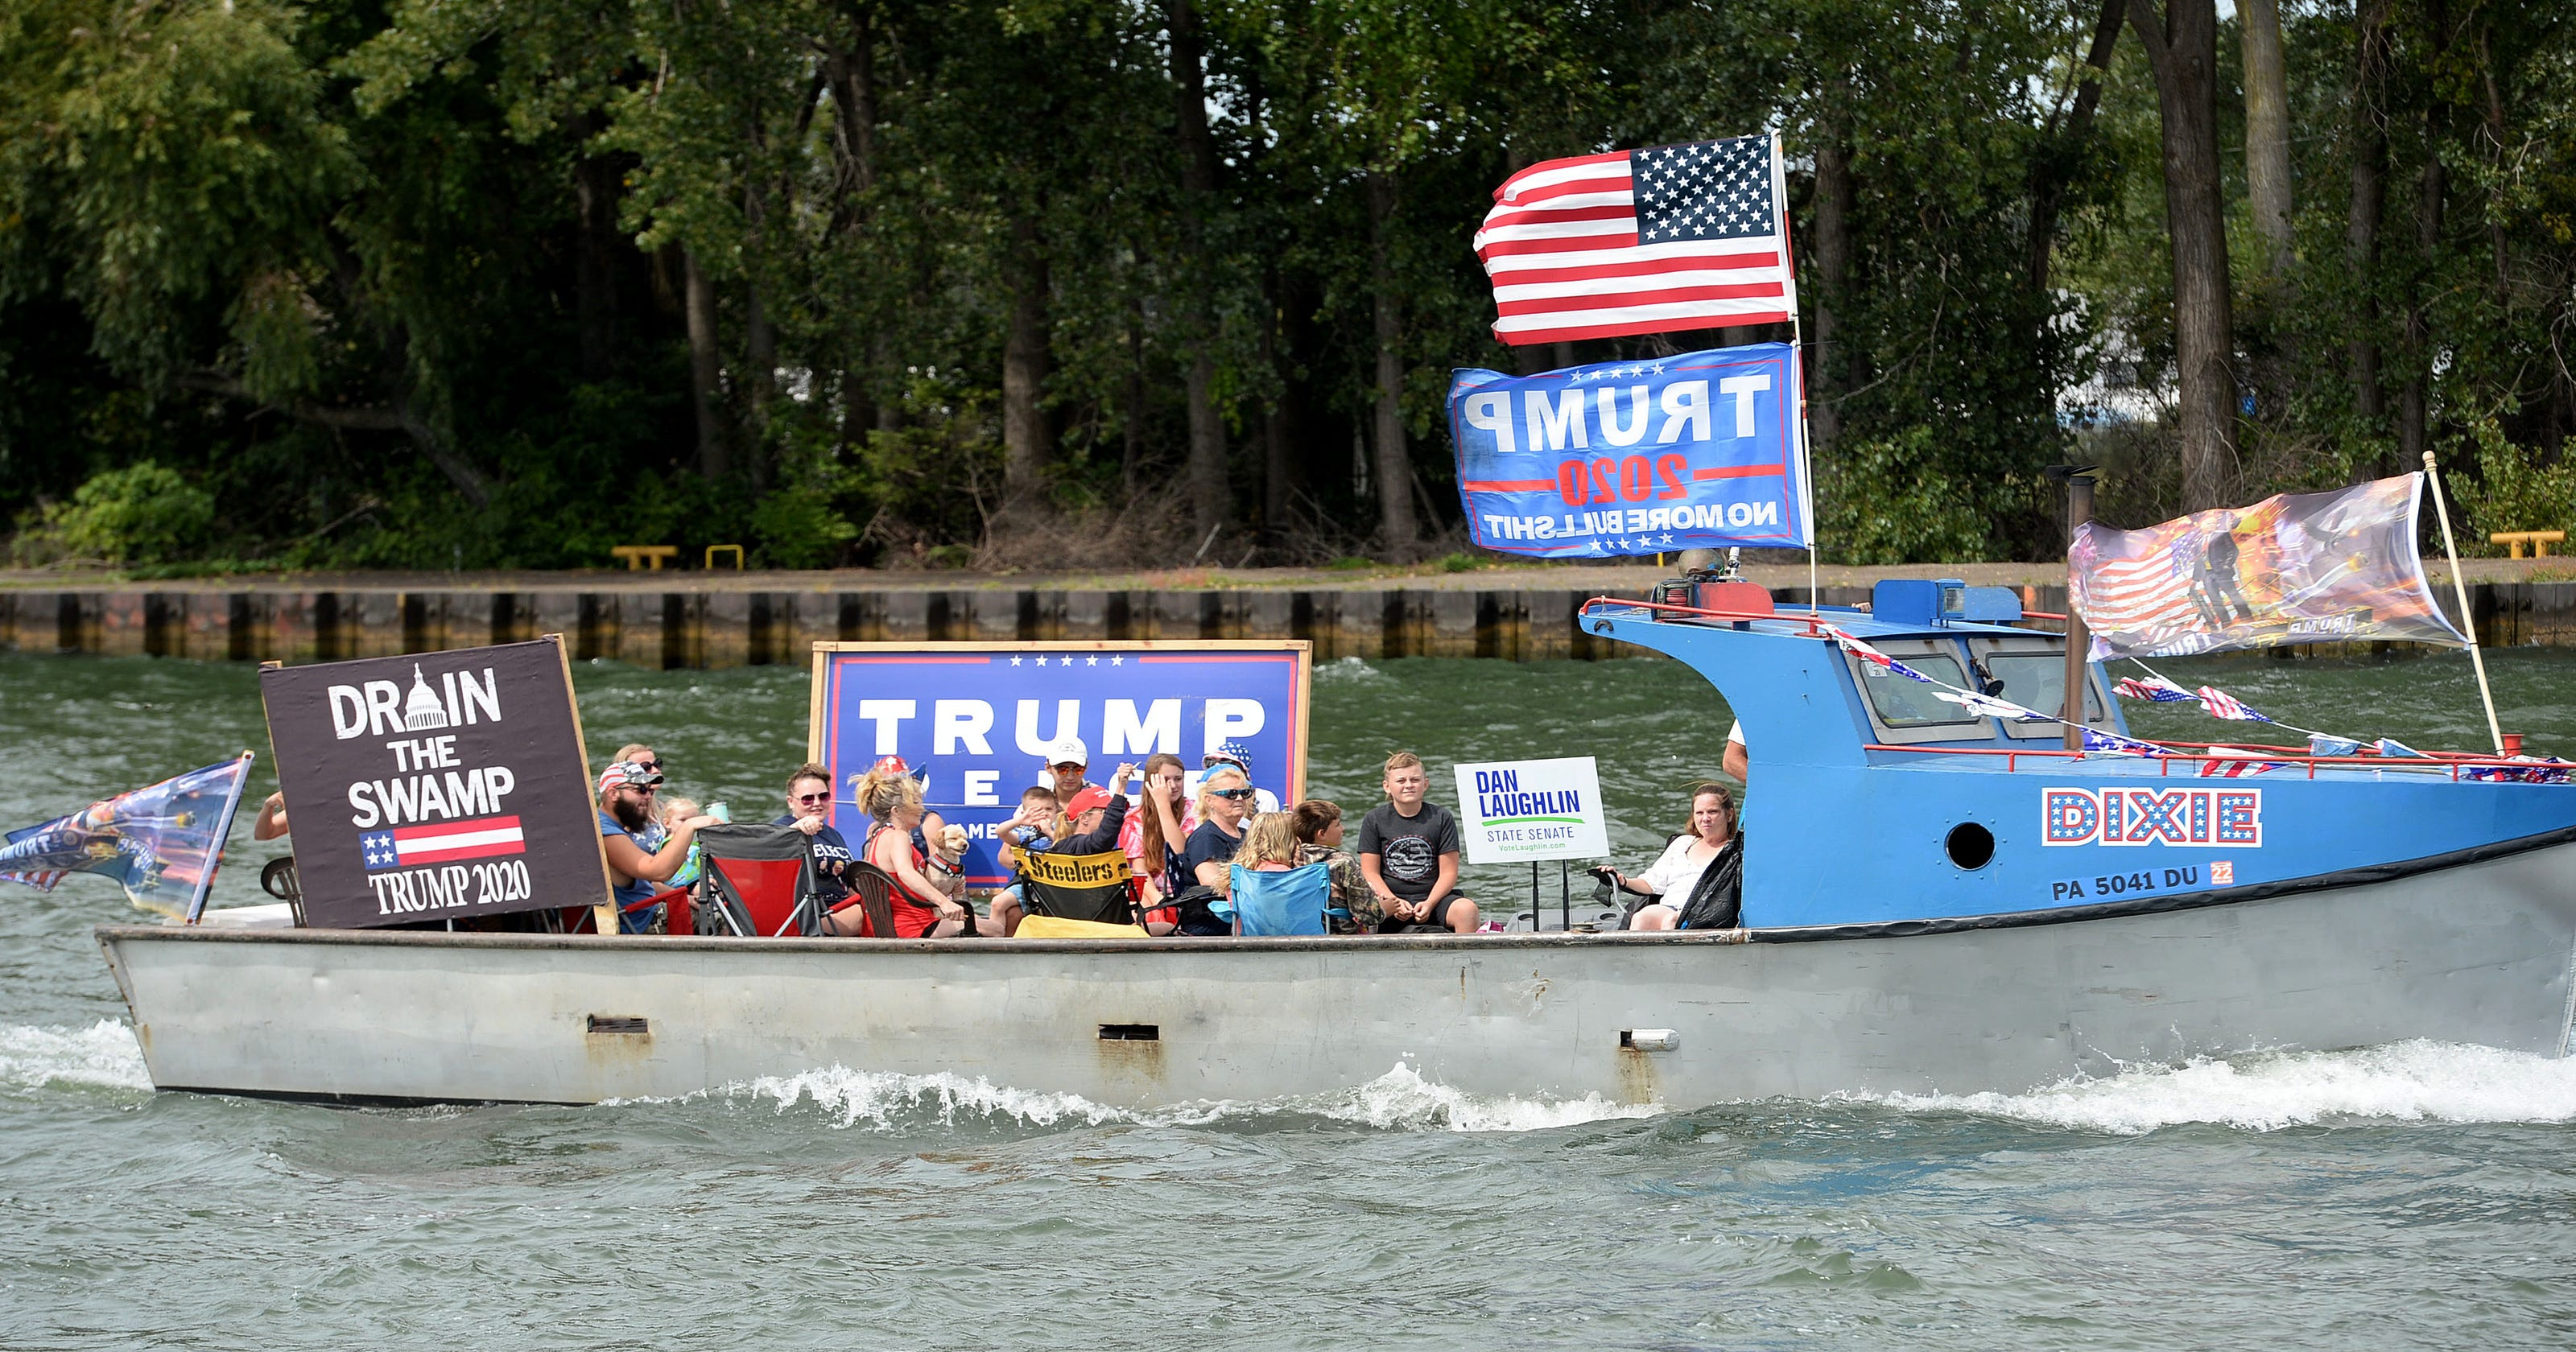 Donald Trump boat parade draws hundreds in Pennsylvania: 'We are the majority and we're going to make some noise' – USA TODAY